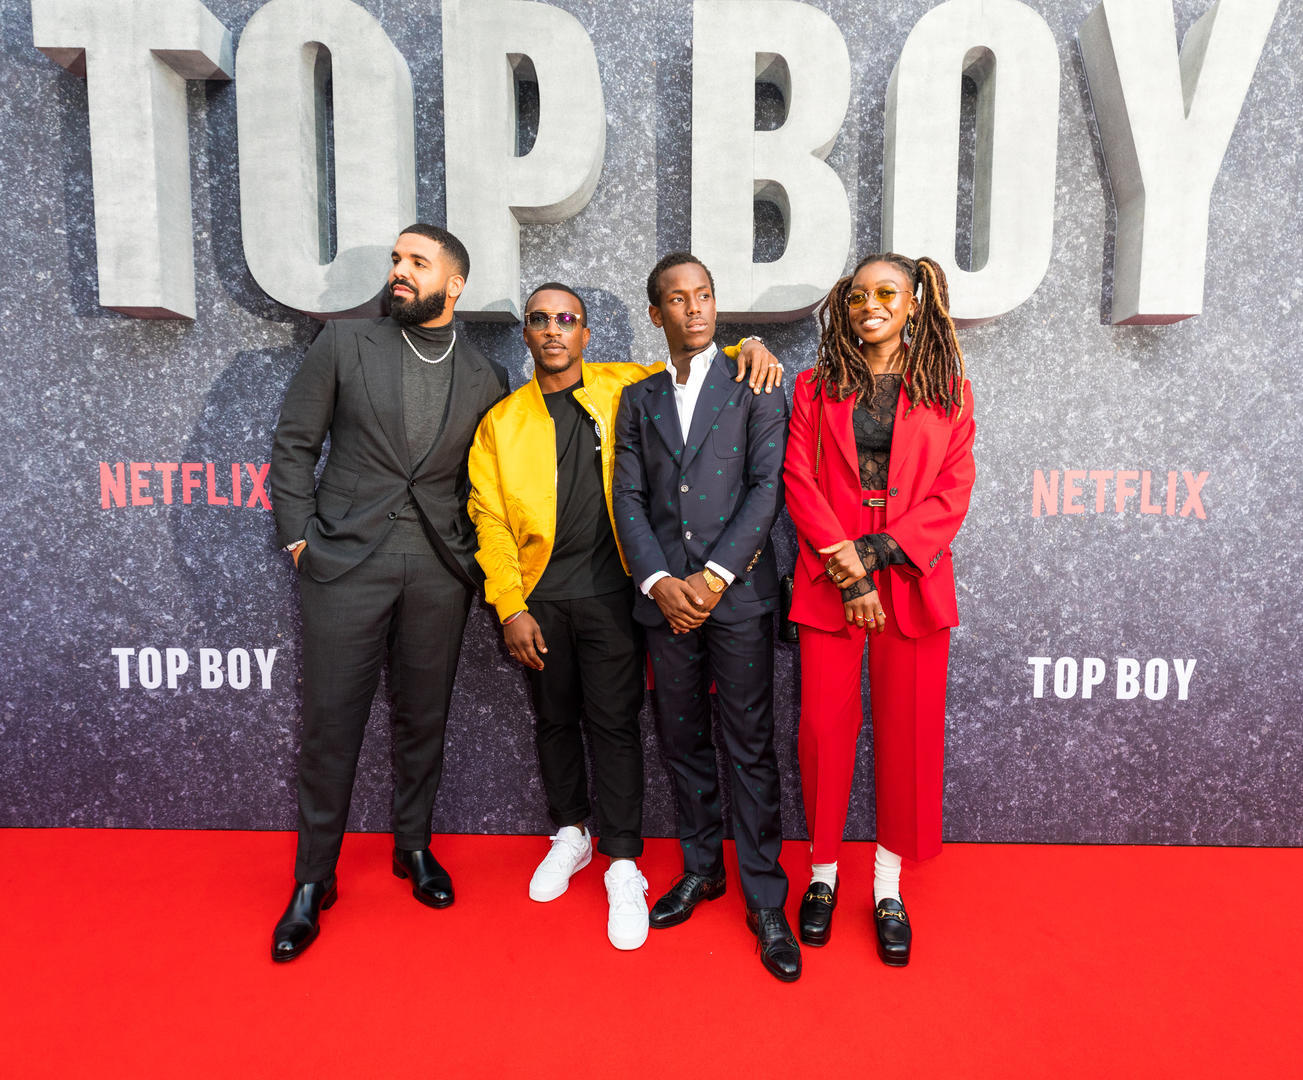 Netflix Announce Brand New Season Of 'Top Boy' Will Begin Filming This Spring